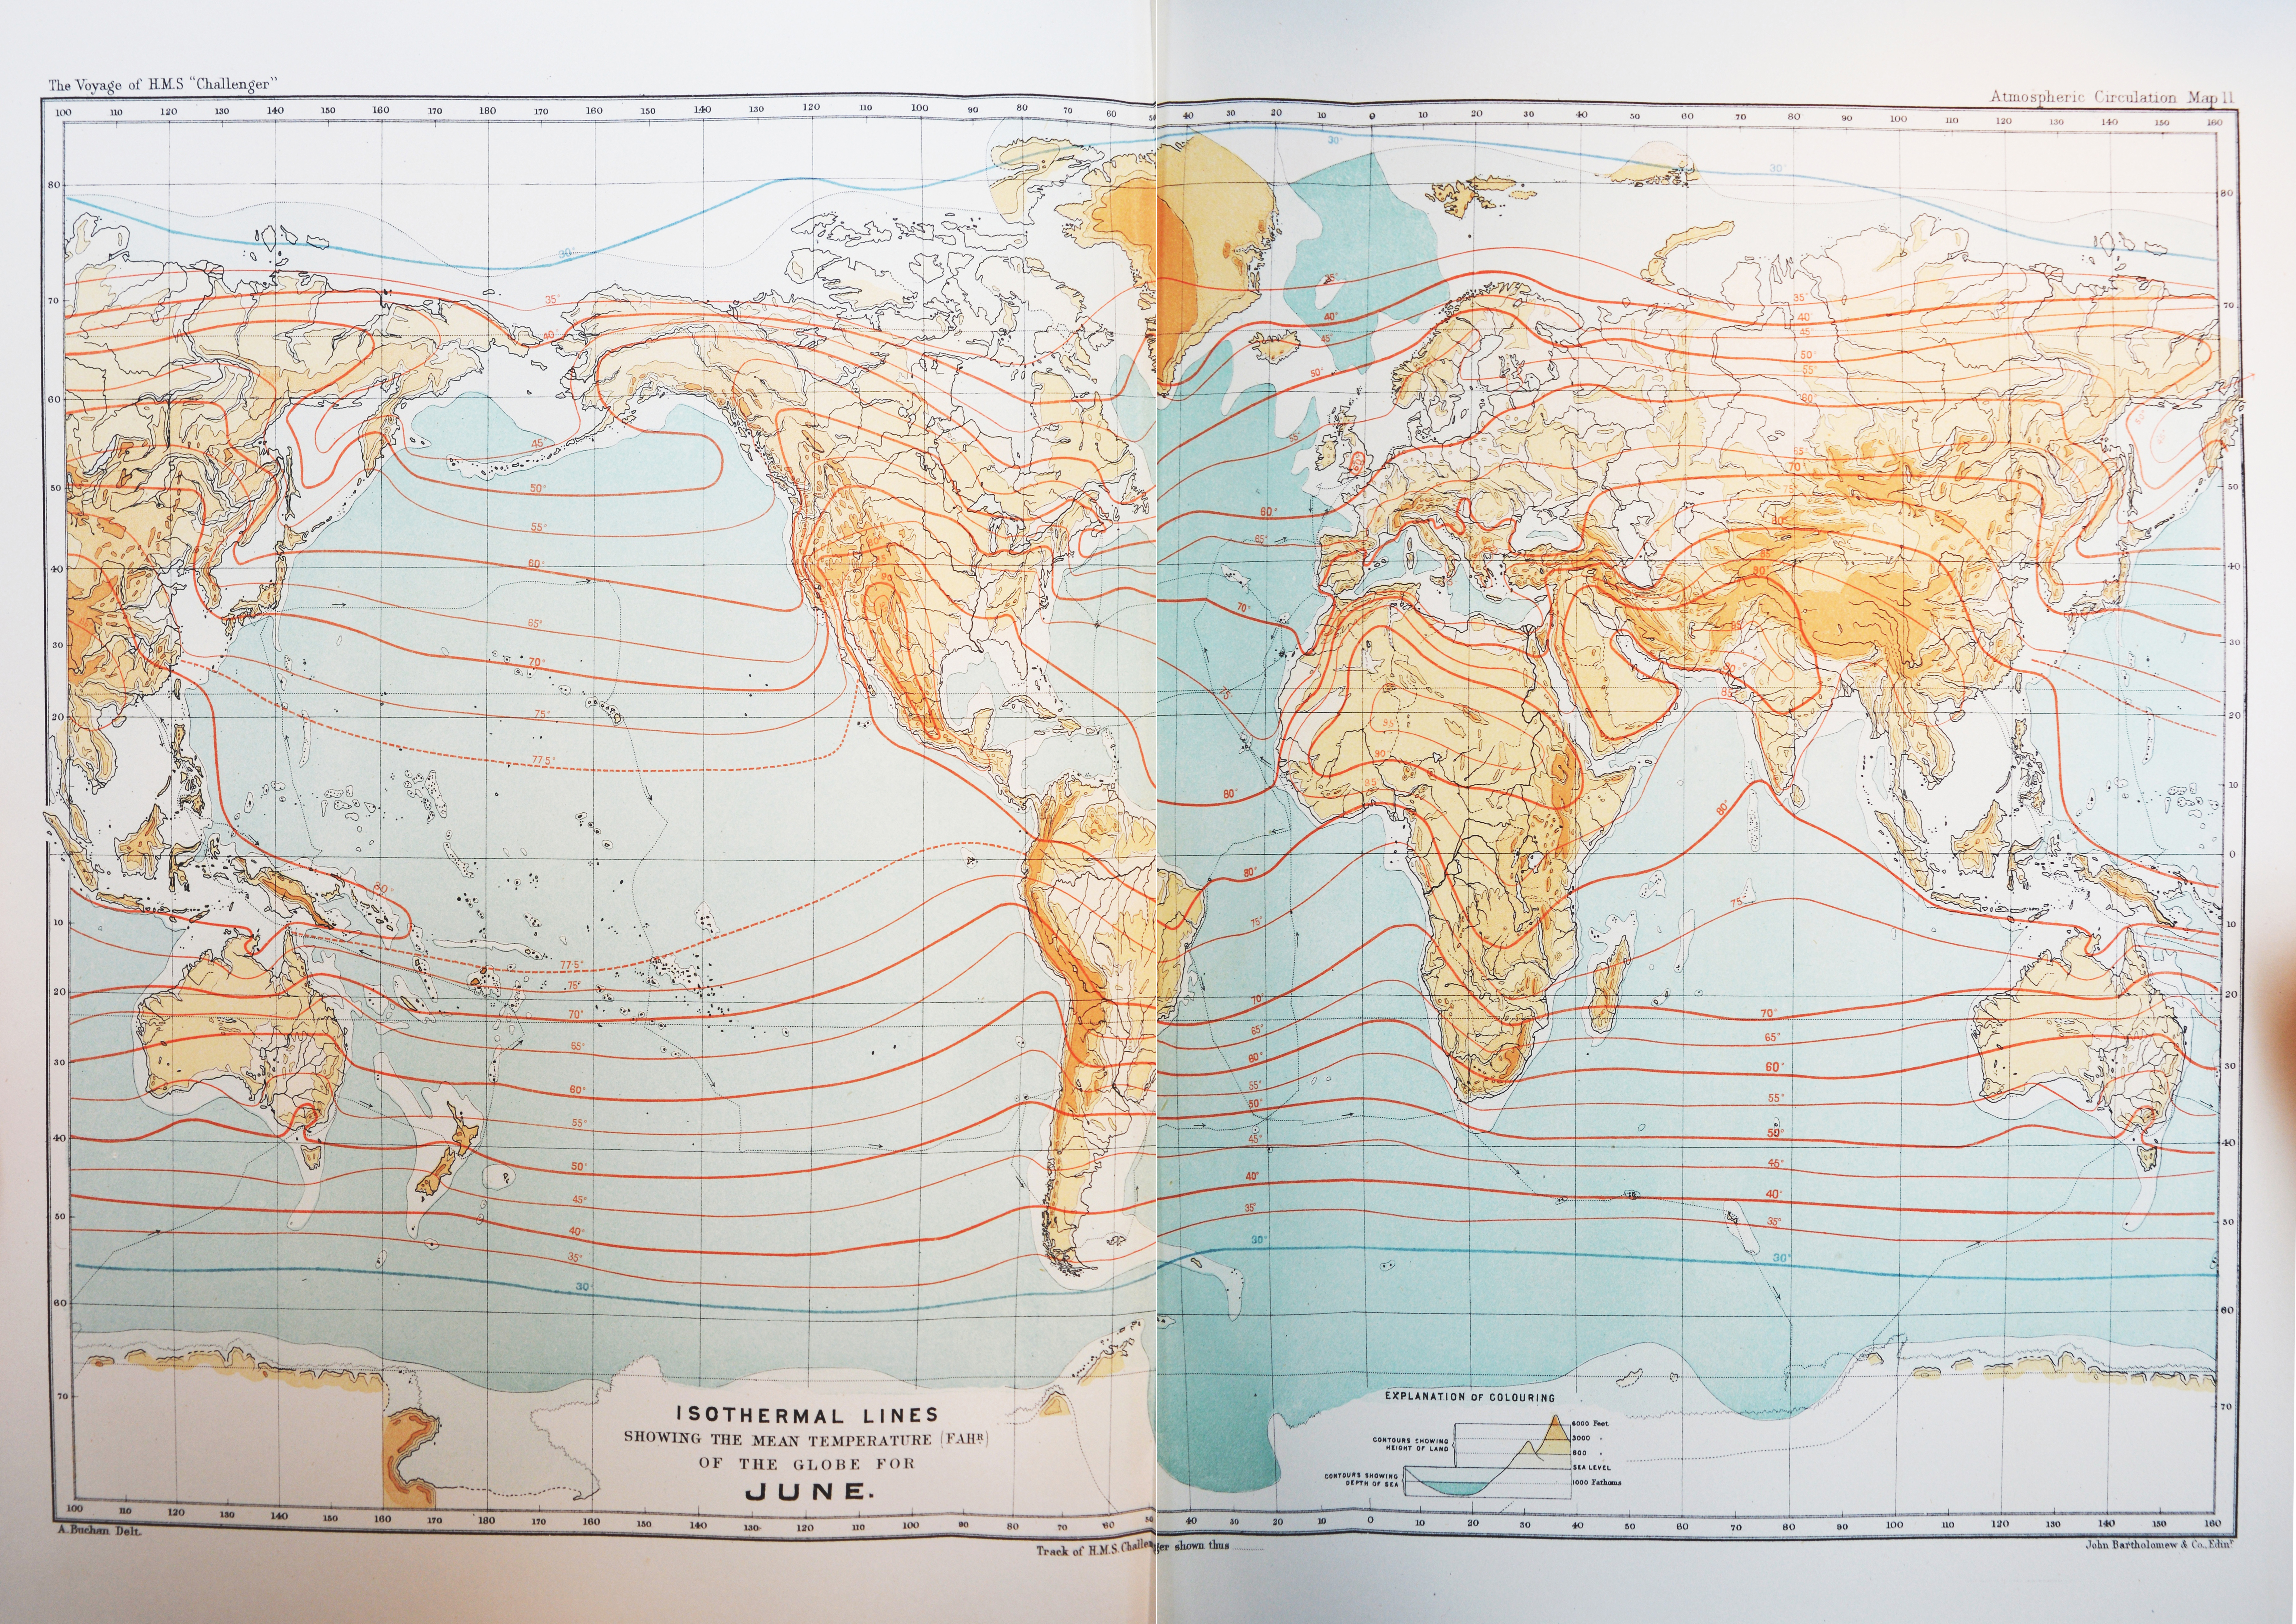 This map was made using data from the Challenger expedition